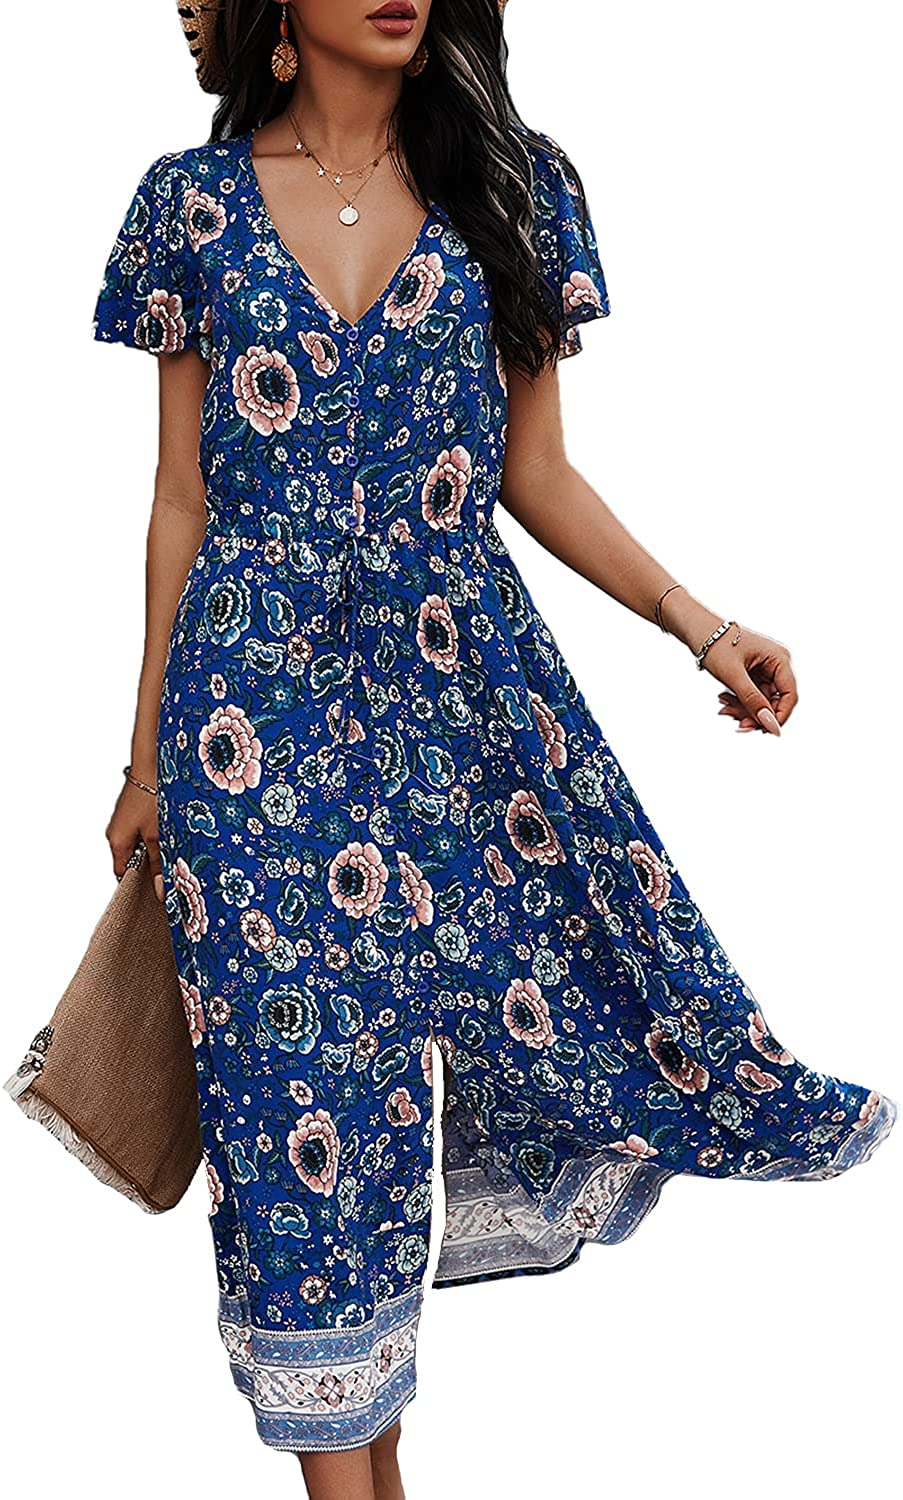 BROVAVE Womens Summer Casual Short Sleeve Floral Print Bohemian V Neck Flowy Midi Dress with Slit